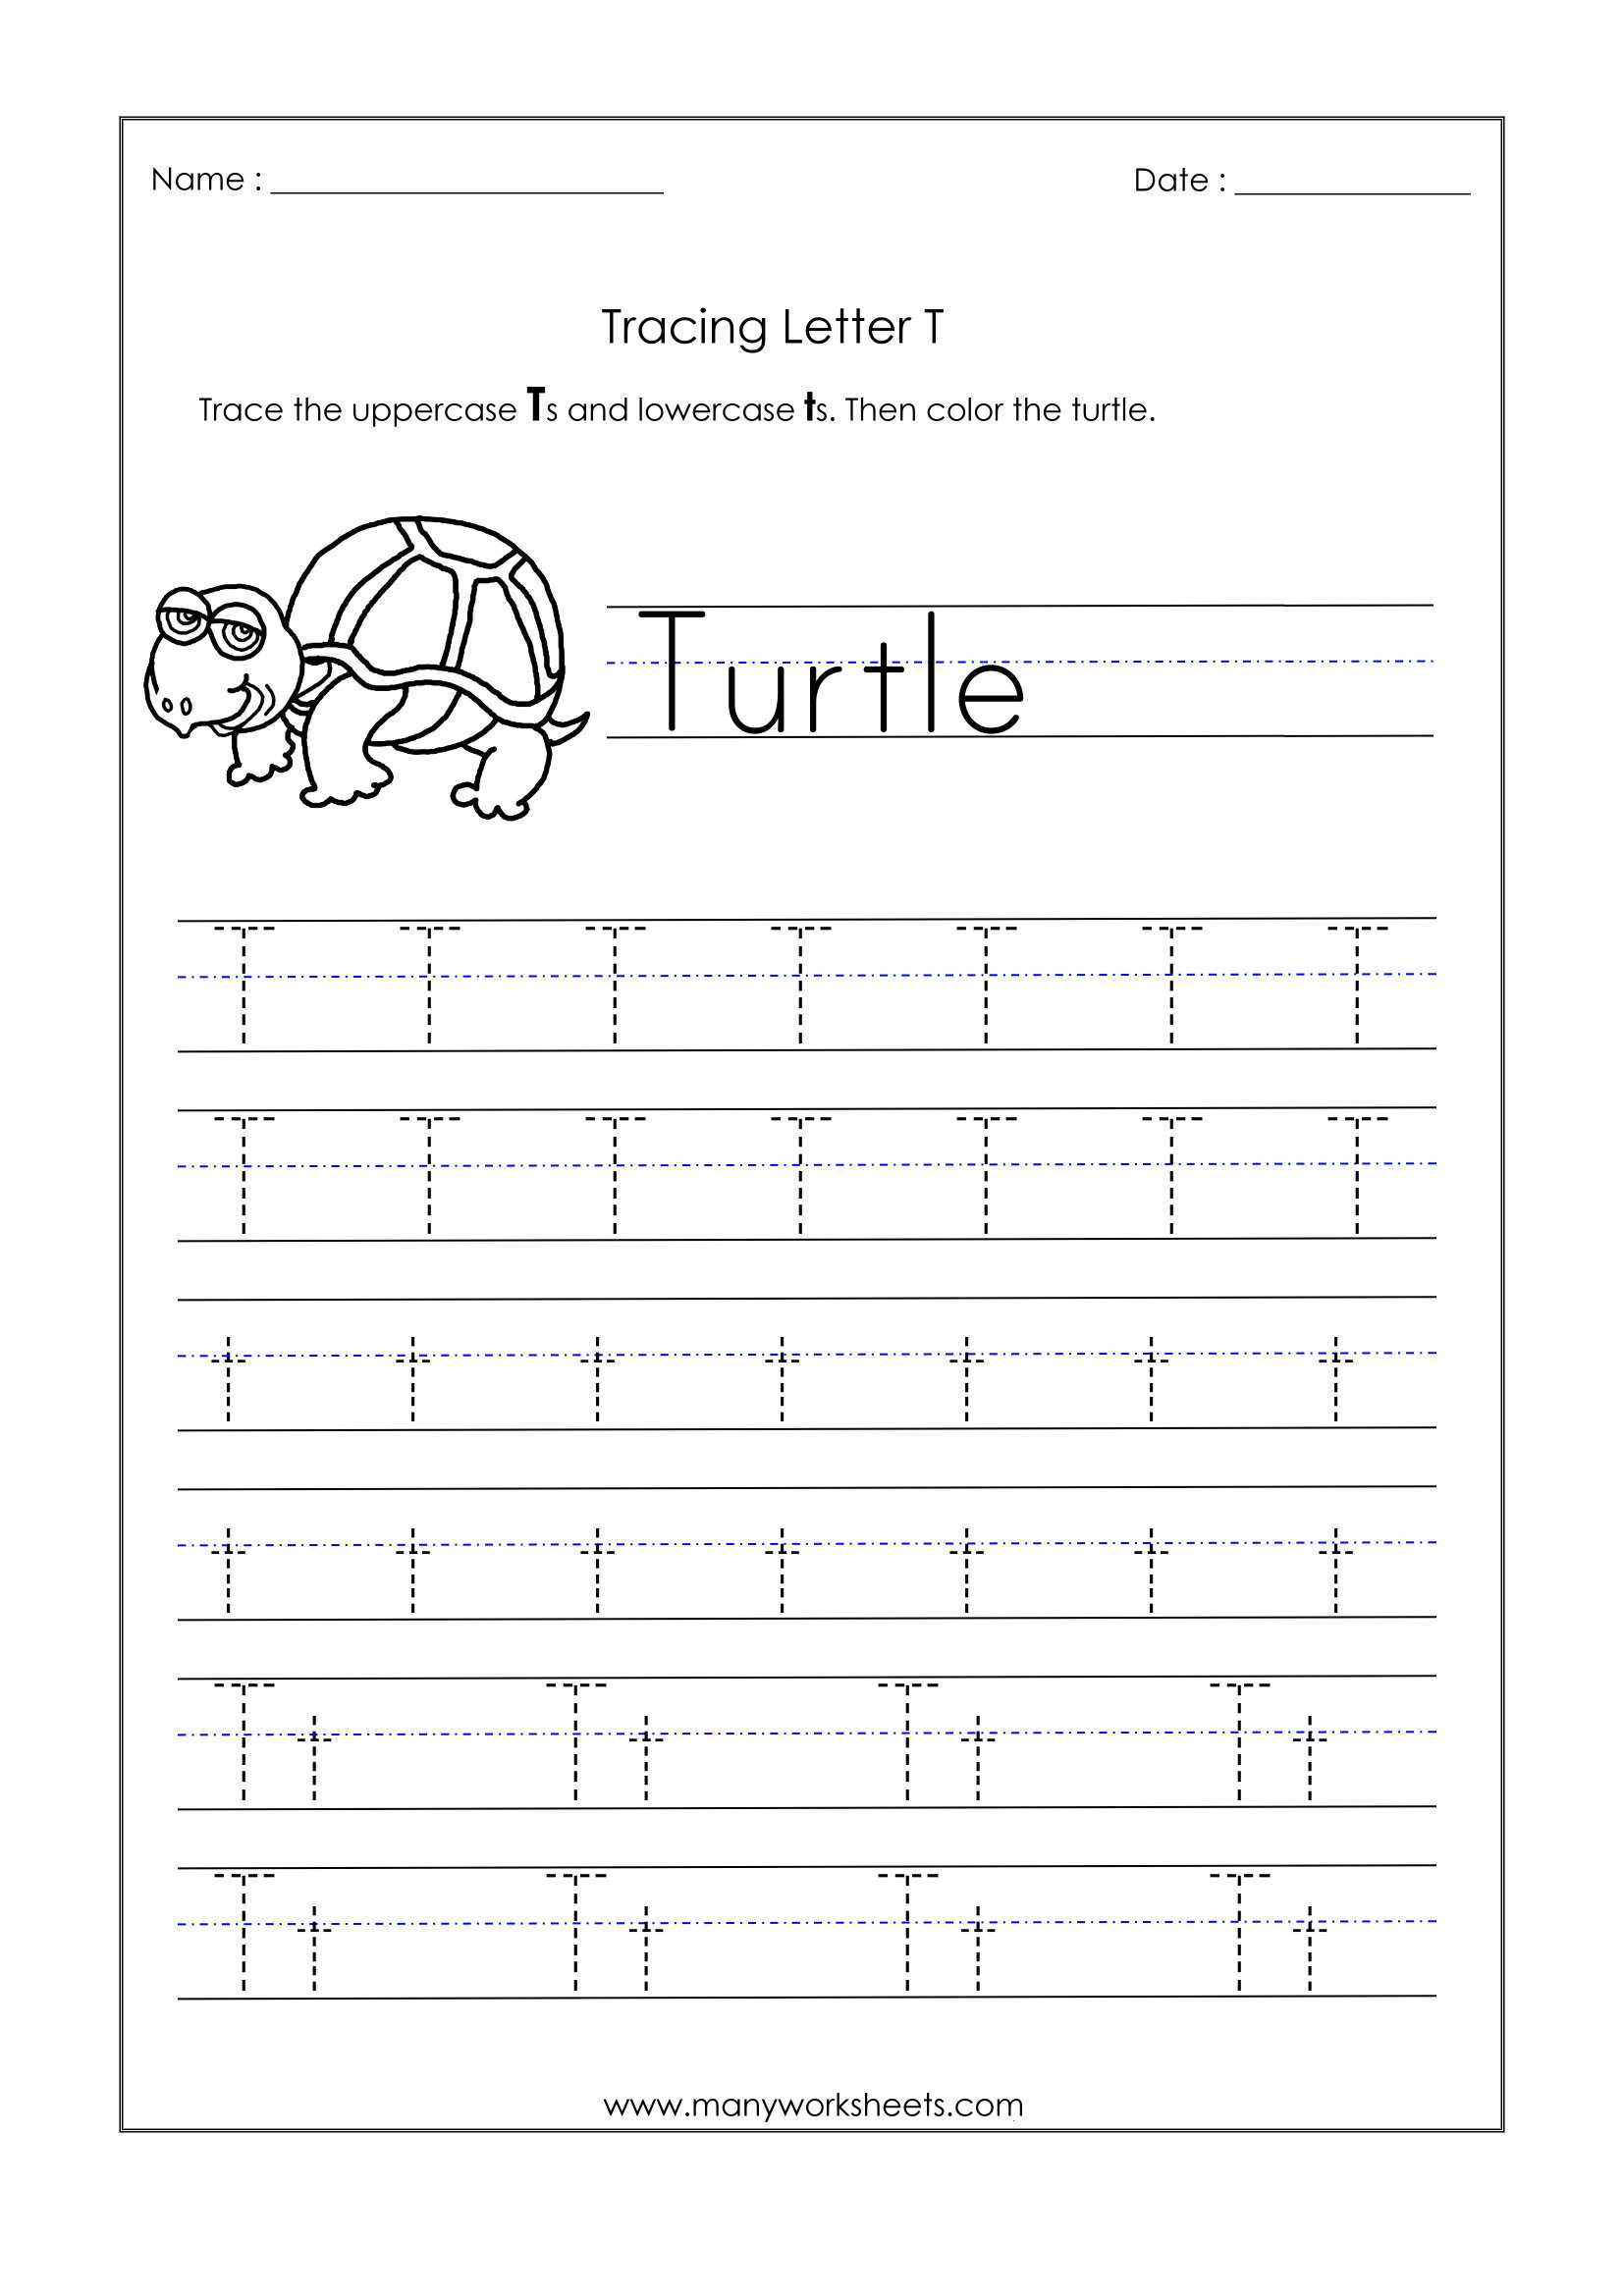 Math Worksheet : Phenomenal Alphabet Writing Worksheetsor inside Letter T Tracing Page